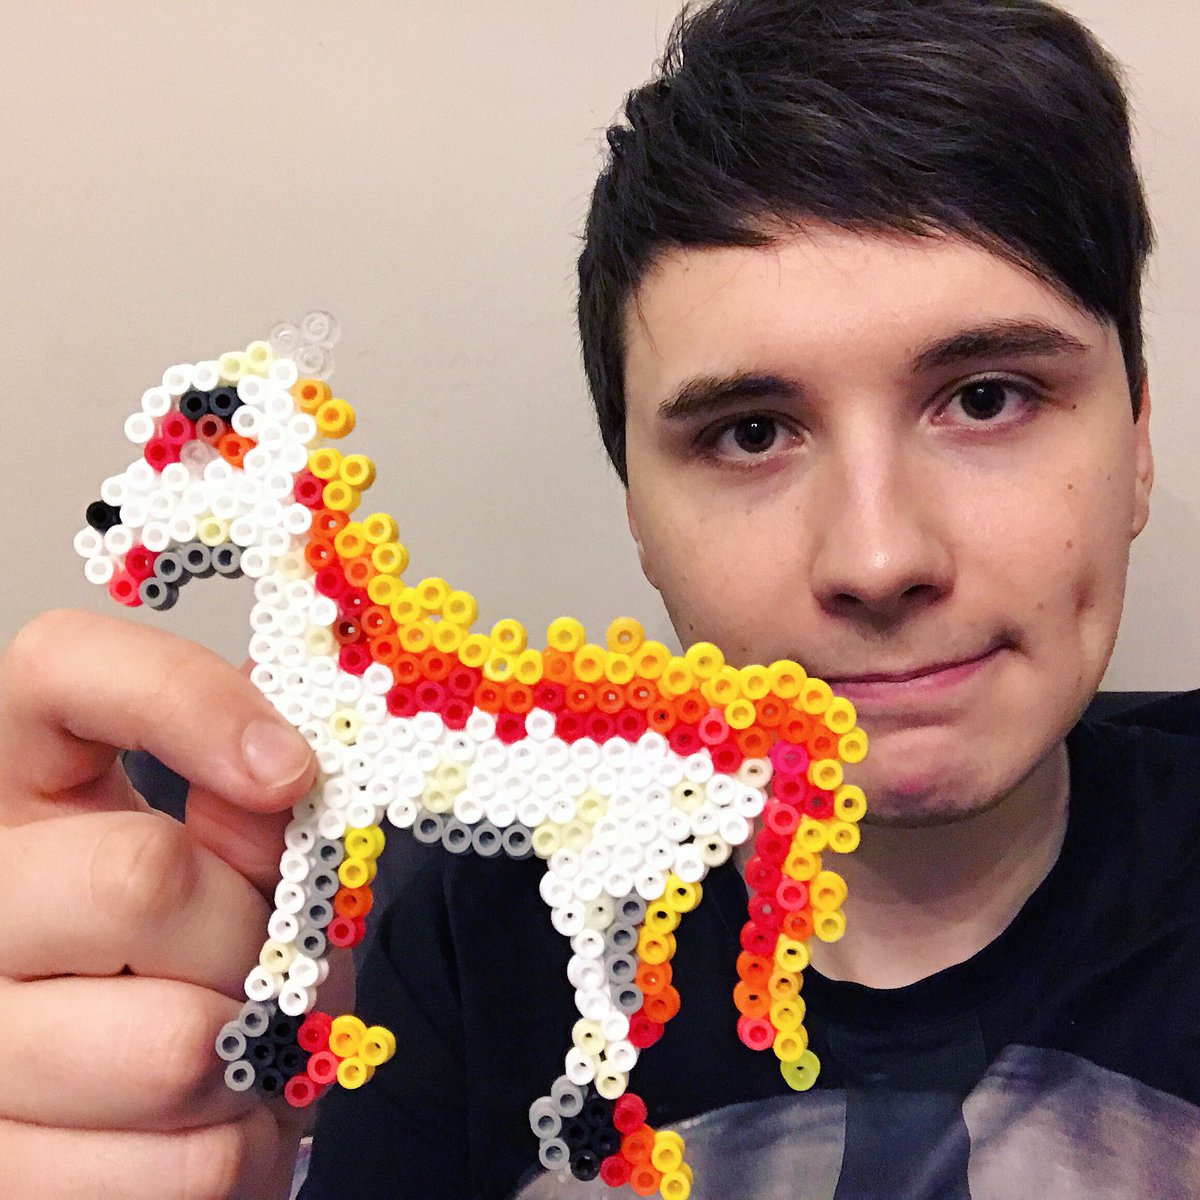 Daniel Howell On Twitter To Everyone Asking If I Went To A Wild